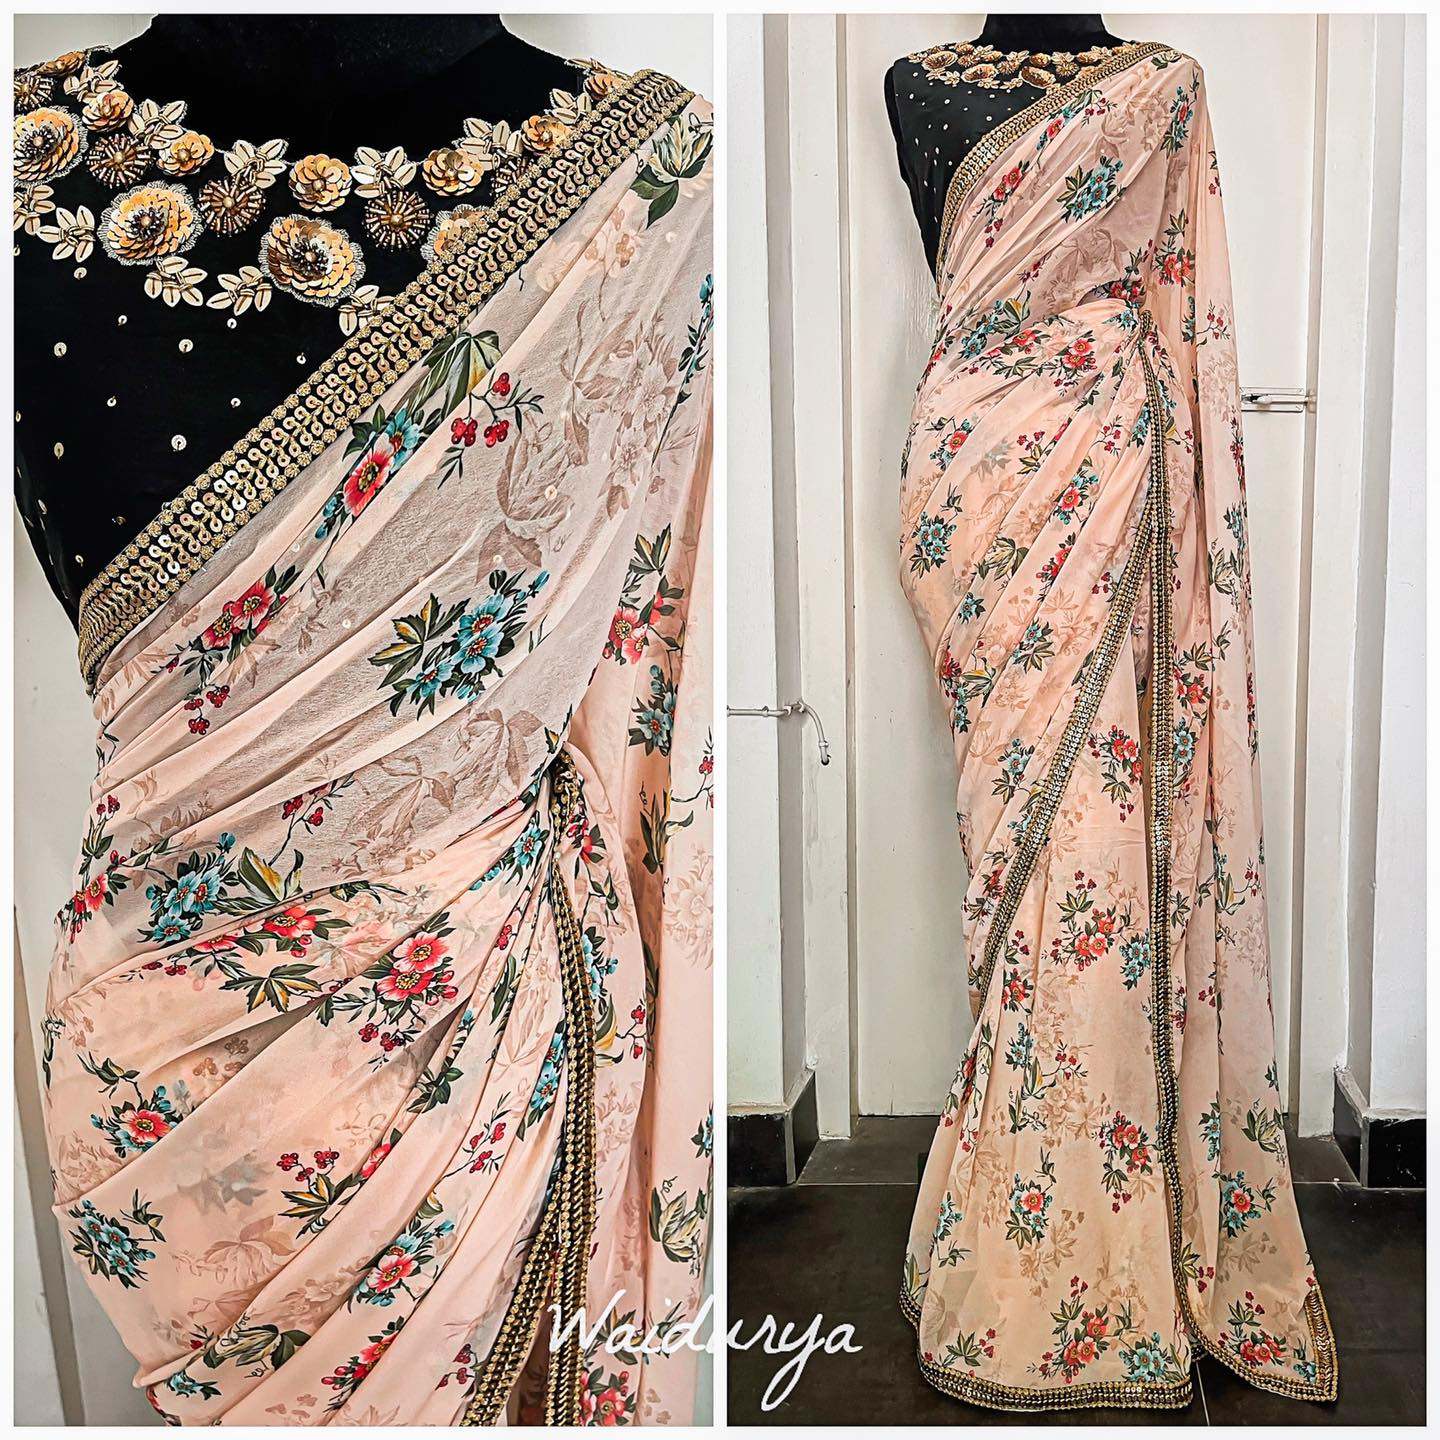 PETAL sari is one of our absolute faves right now from the nee collection. This is a floral printed georgette sari with a gold sequin embroidered border on a black raw silk. The blouse is 100% hand embroidered in zardozi and multi sequin work! 2021-06-21